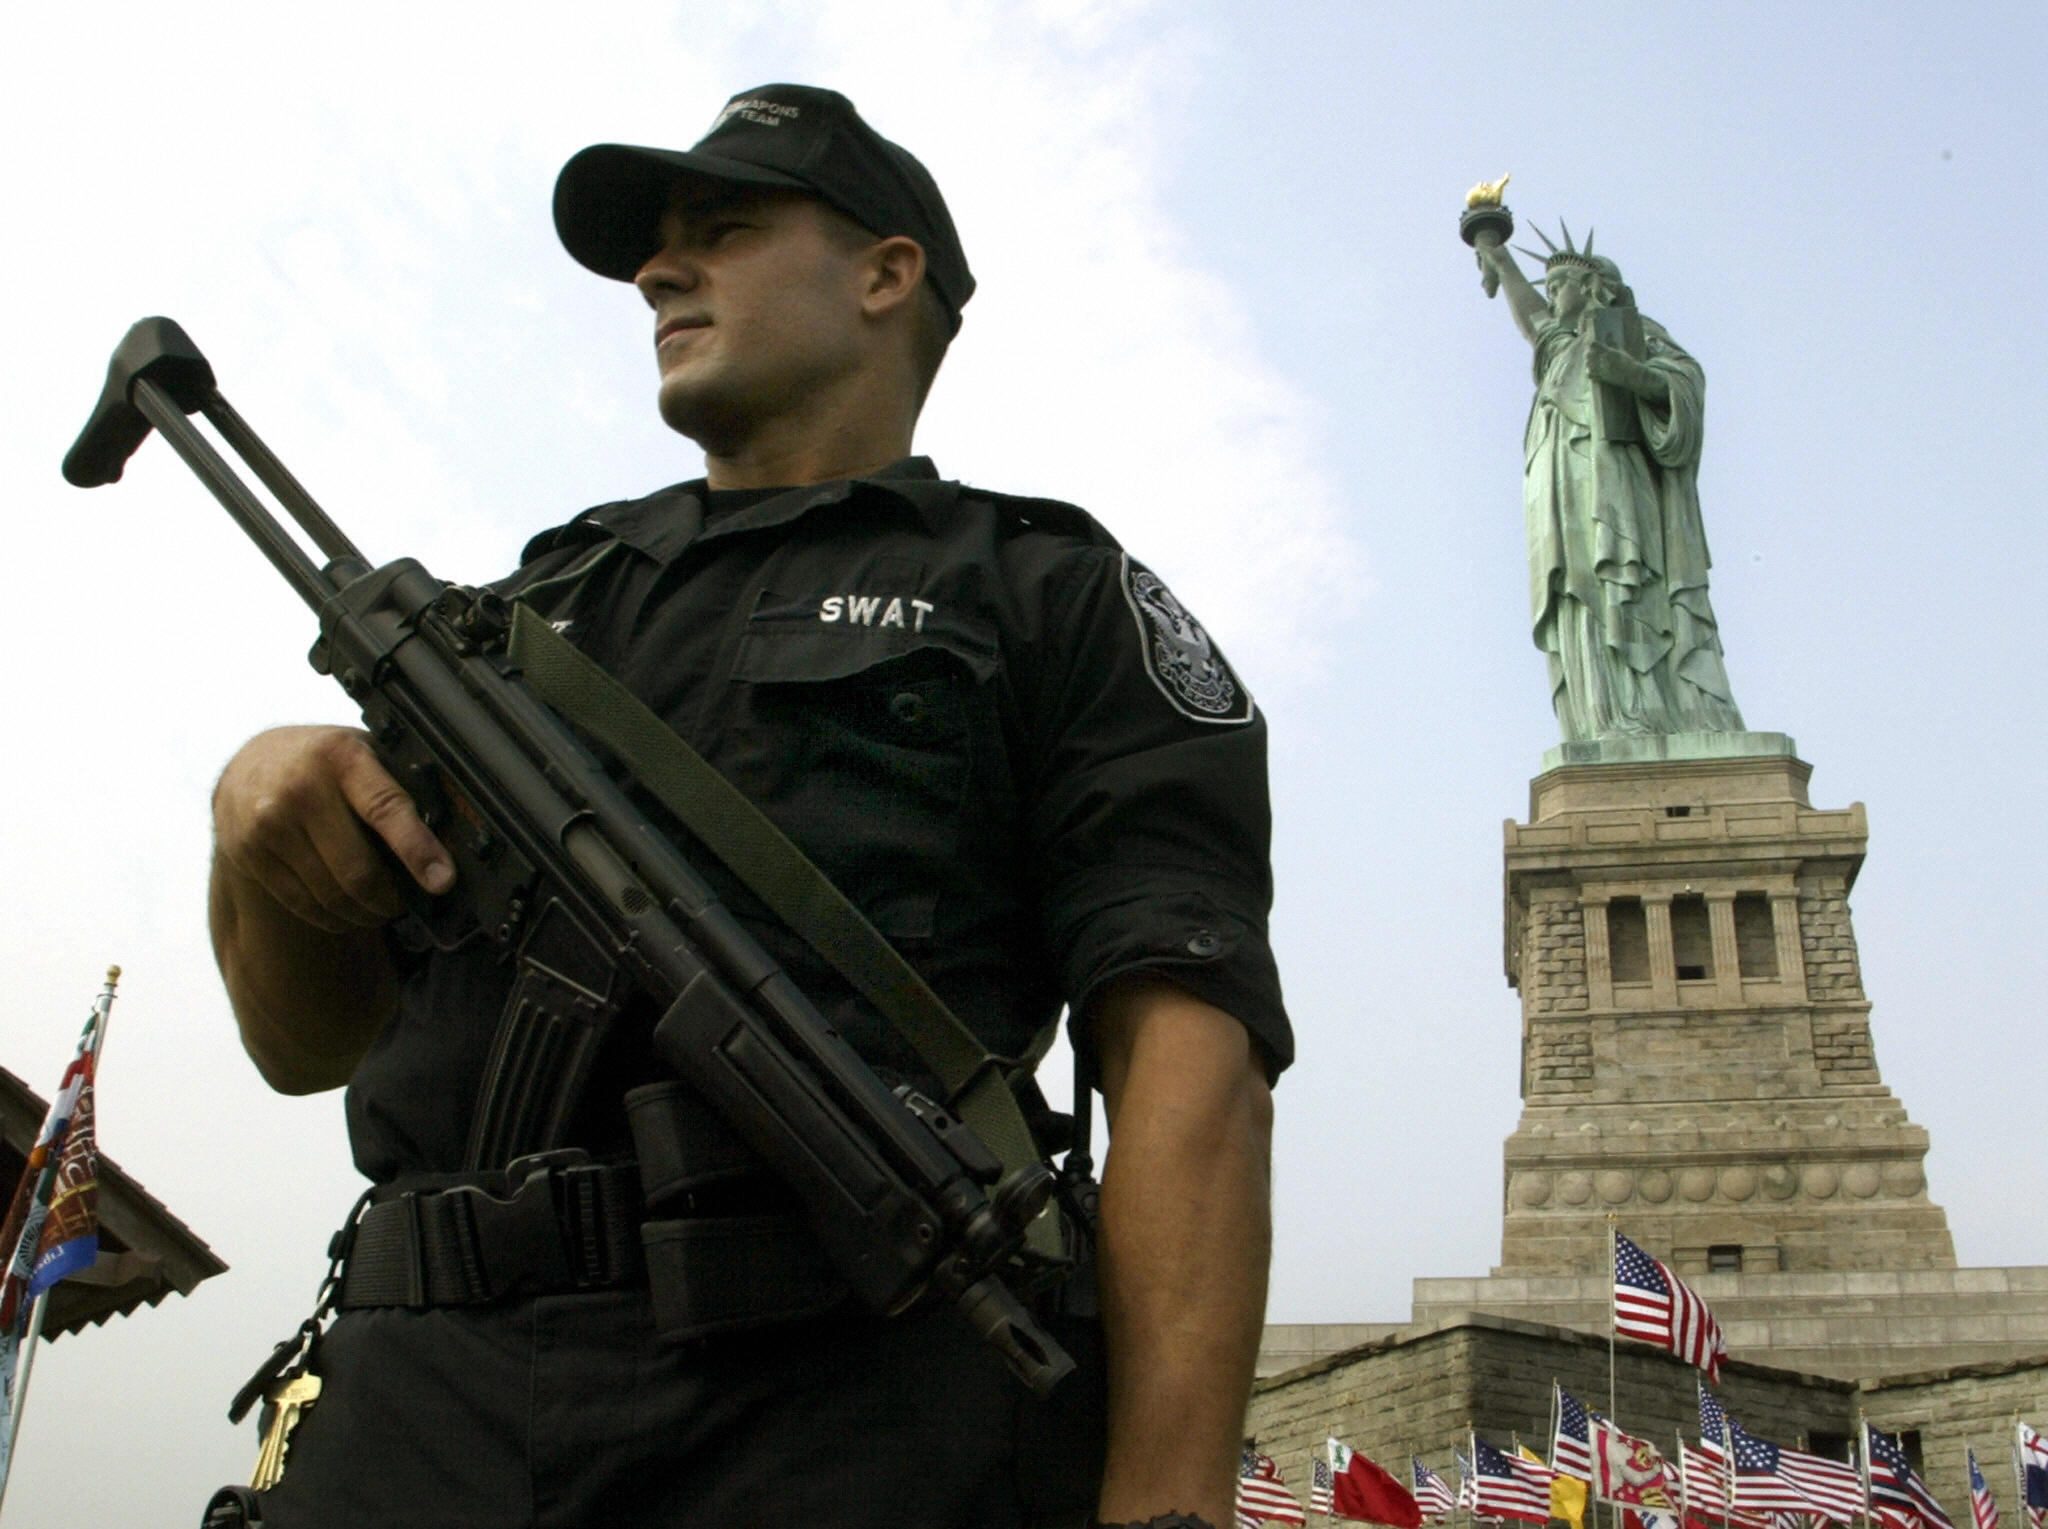 A police officer stands guard in front of the Statue of Liberty.